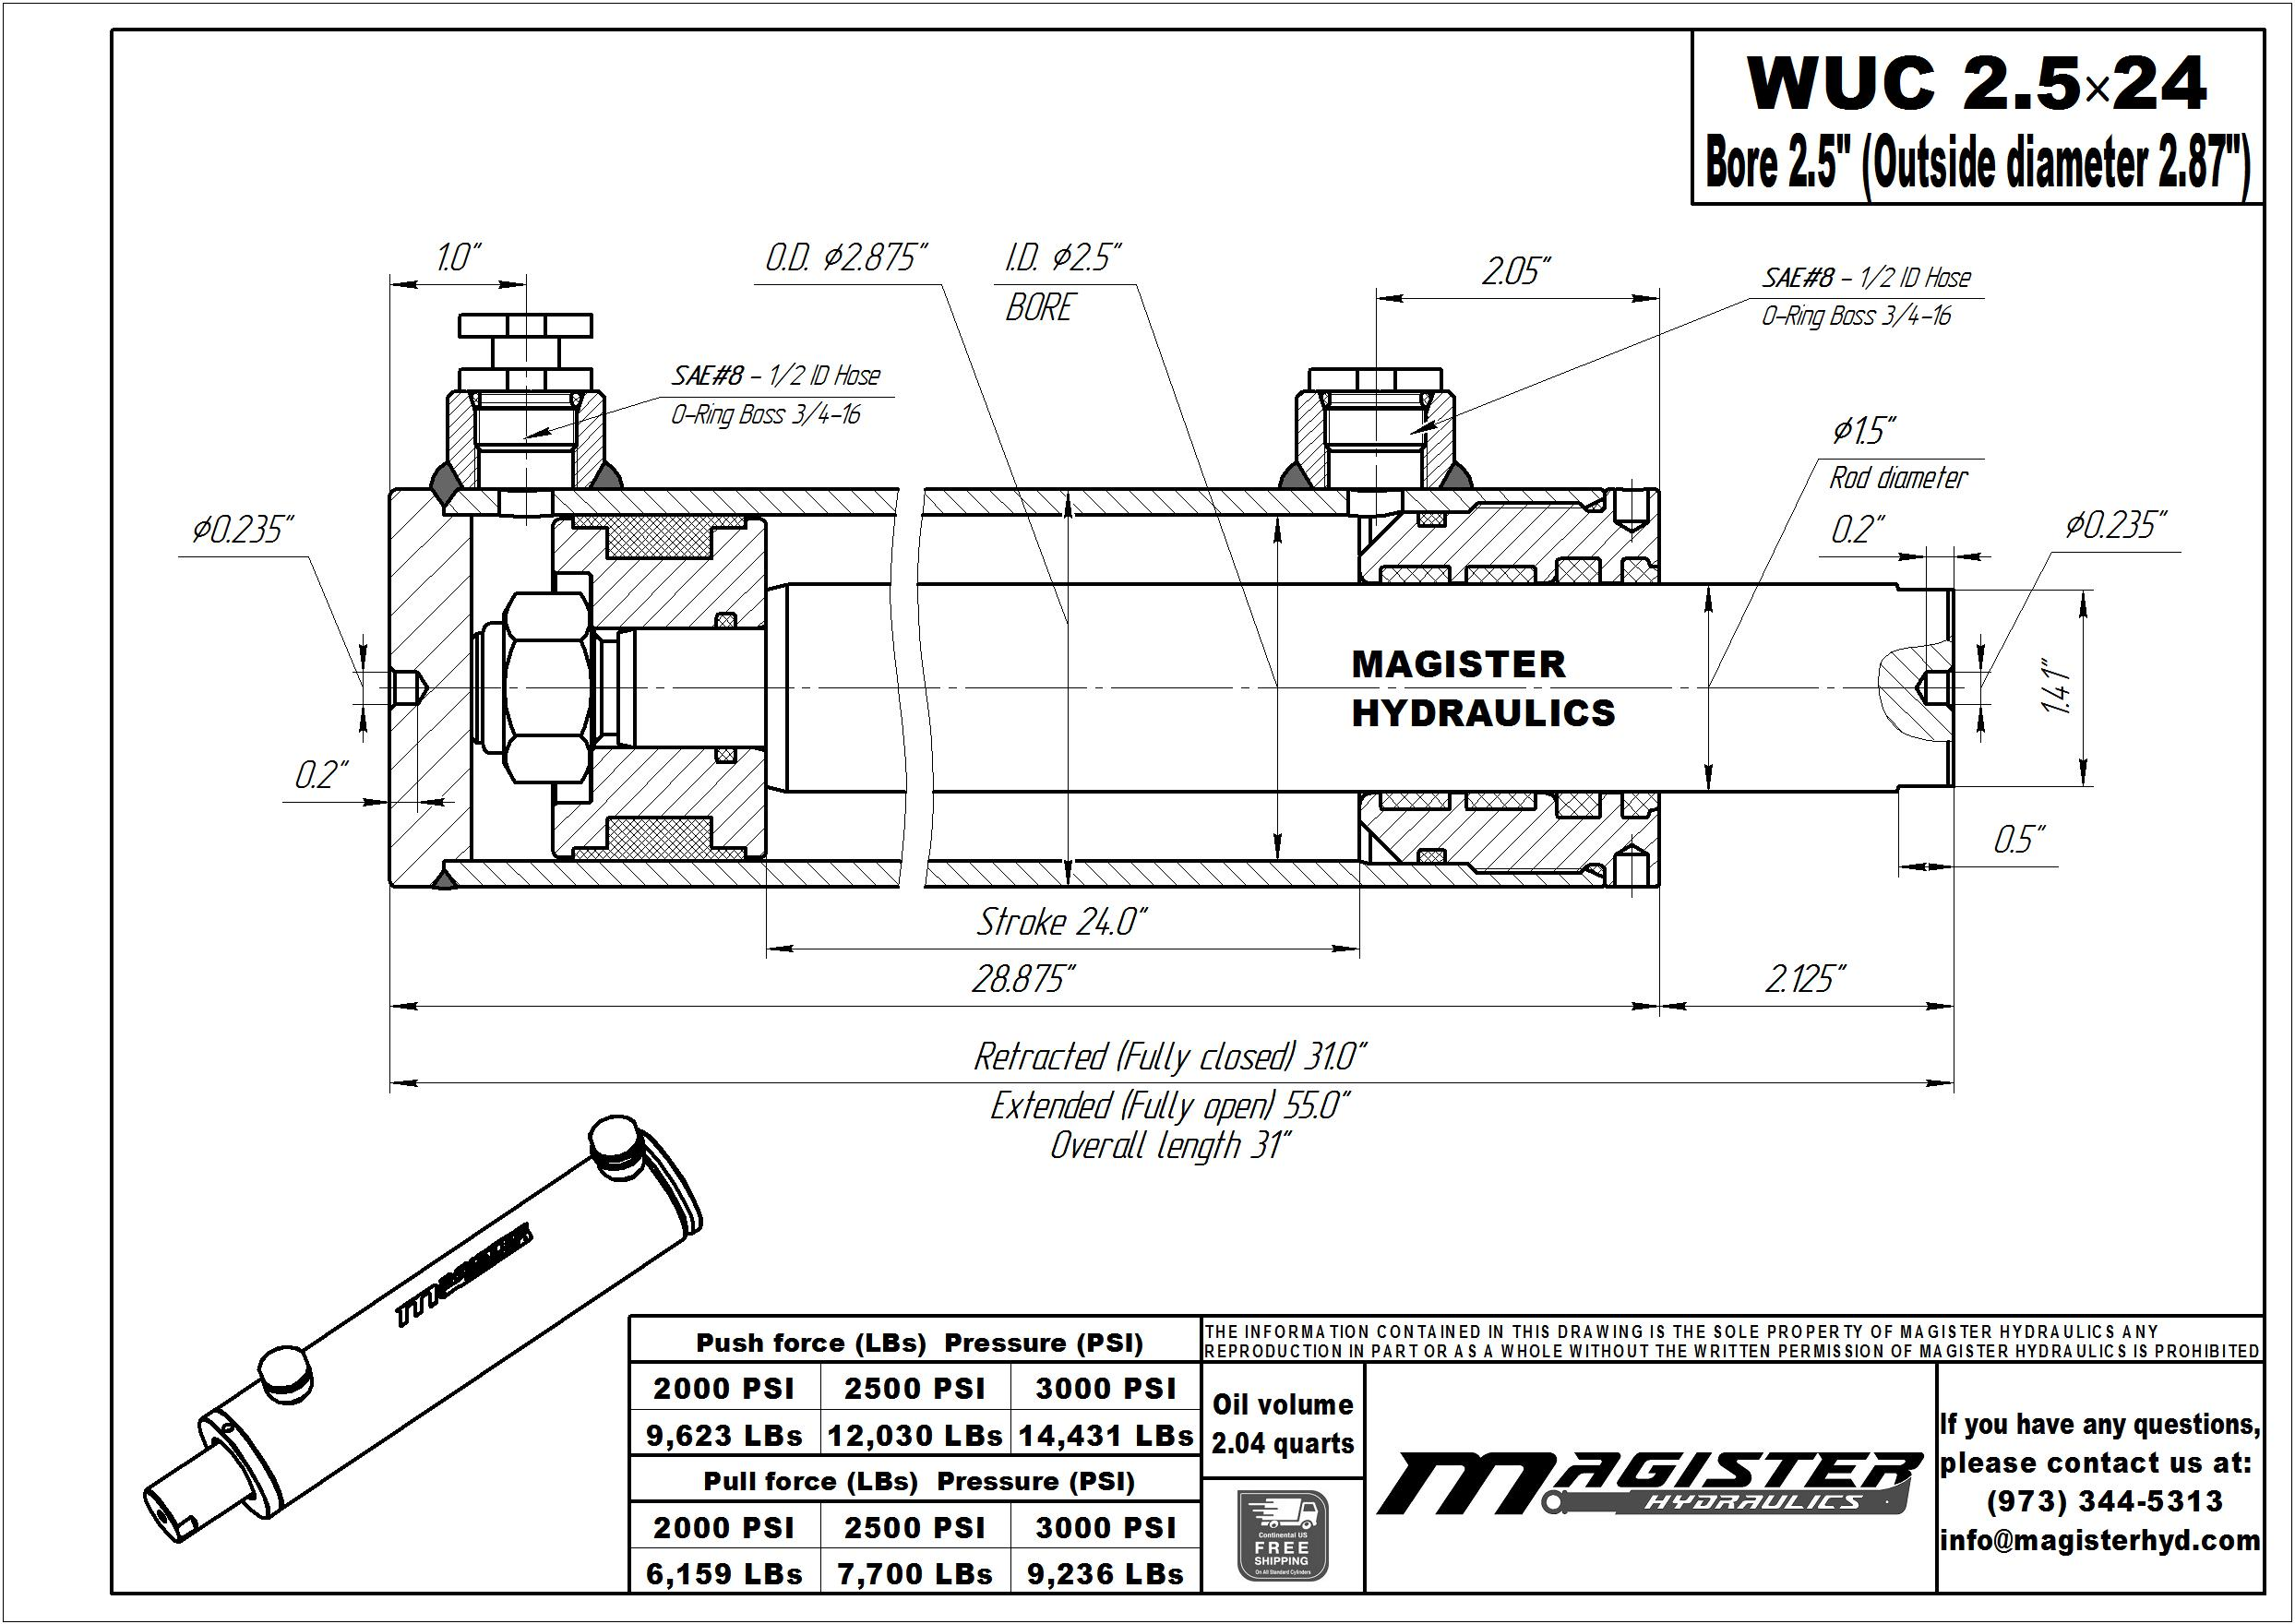 2.5 bore x 24 stroke hydraulic cylinder, welded universal double acting cylinder | Magister Hydraulics